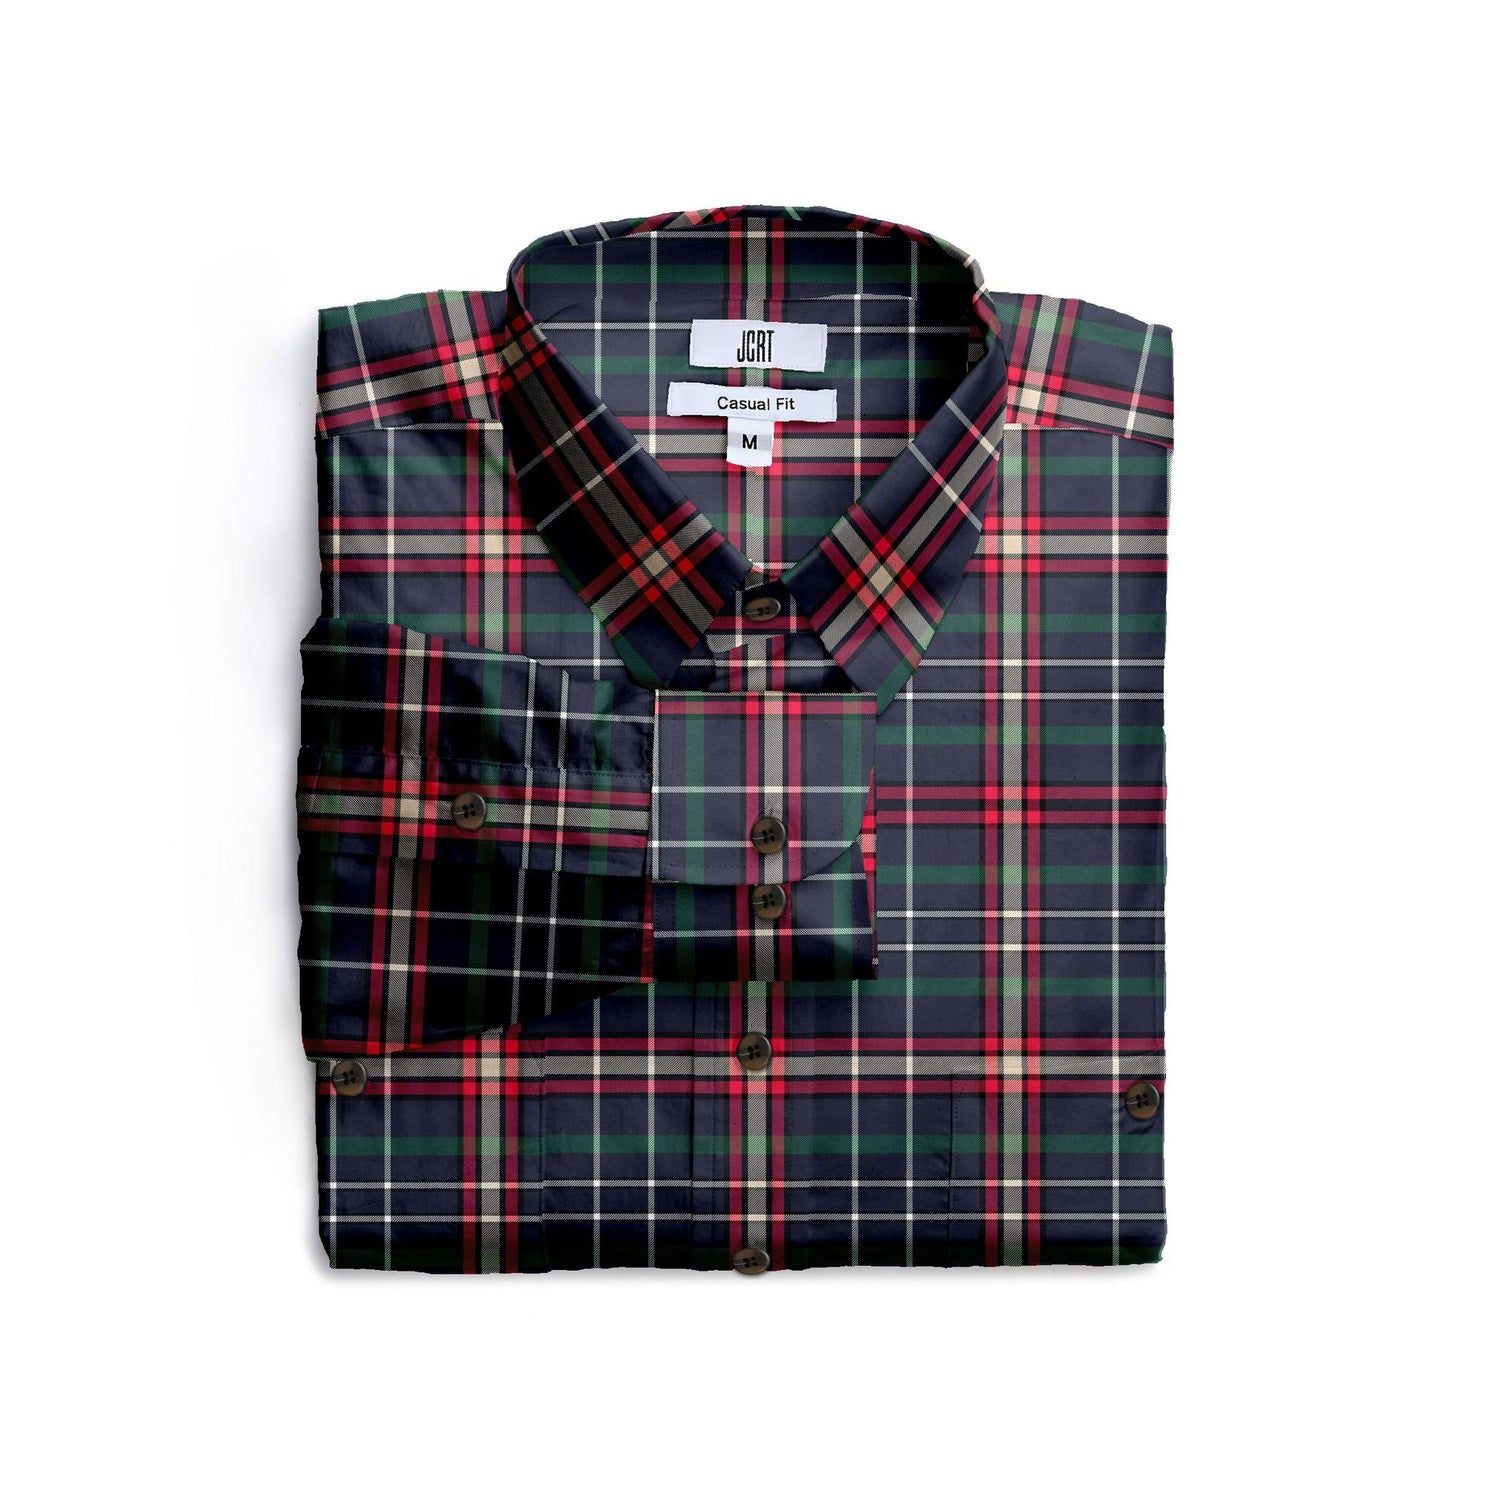 The All Work and No Play Plaid Flannel